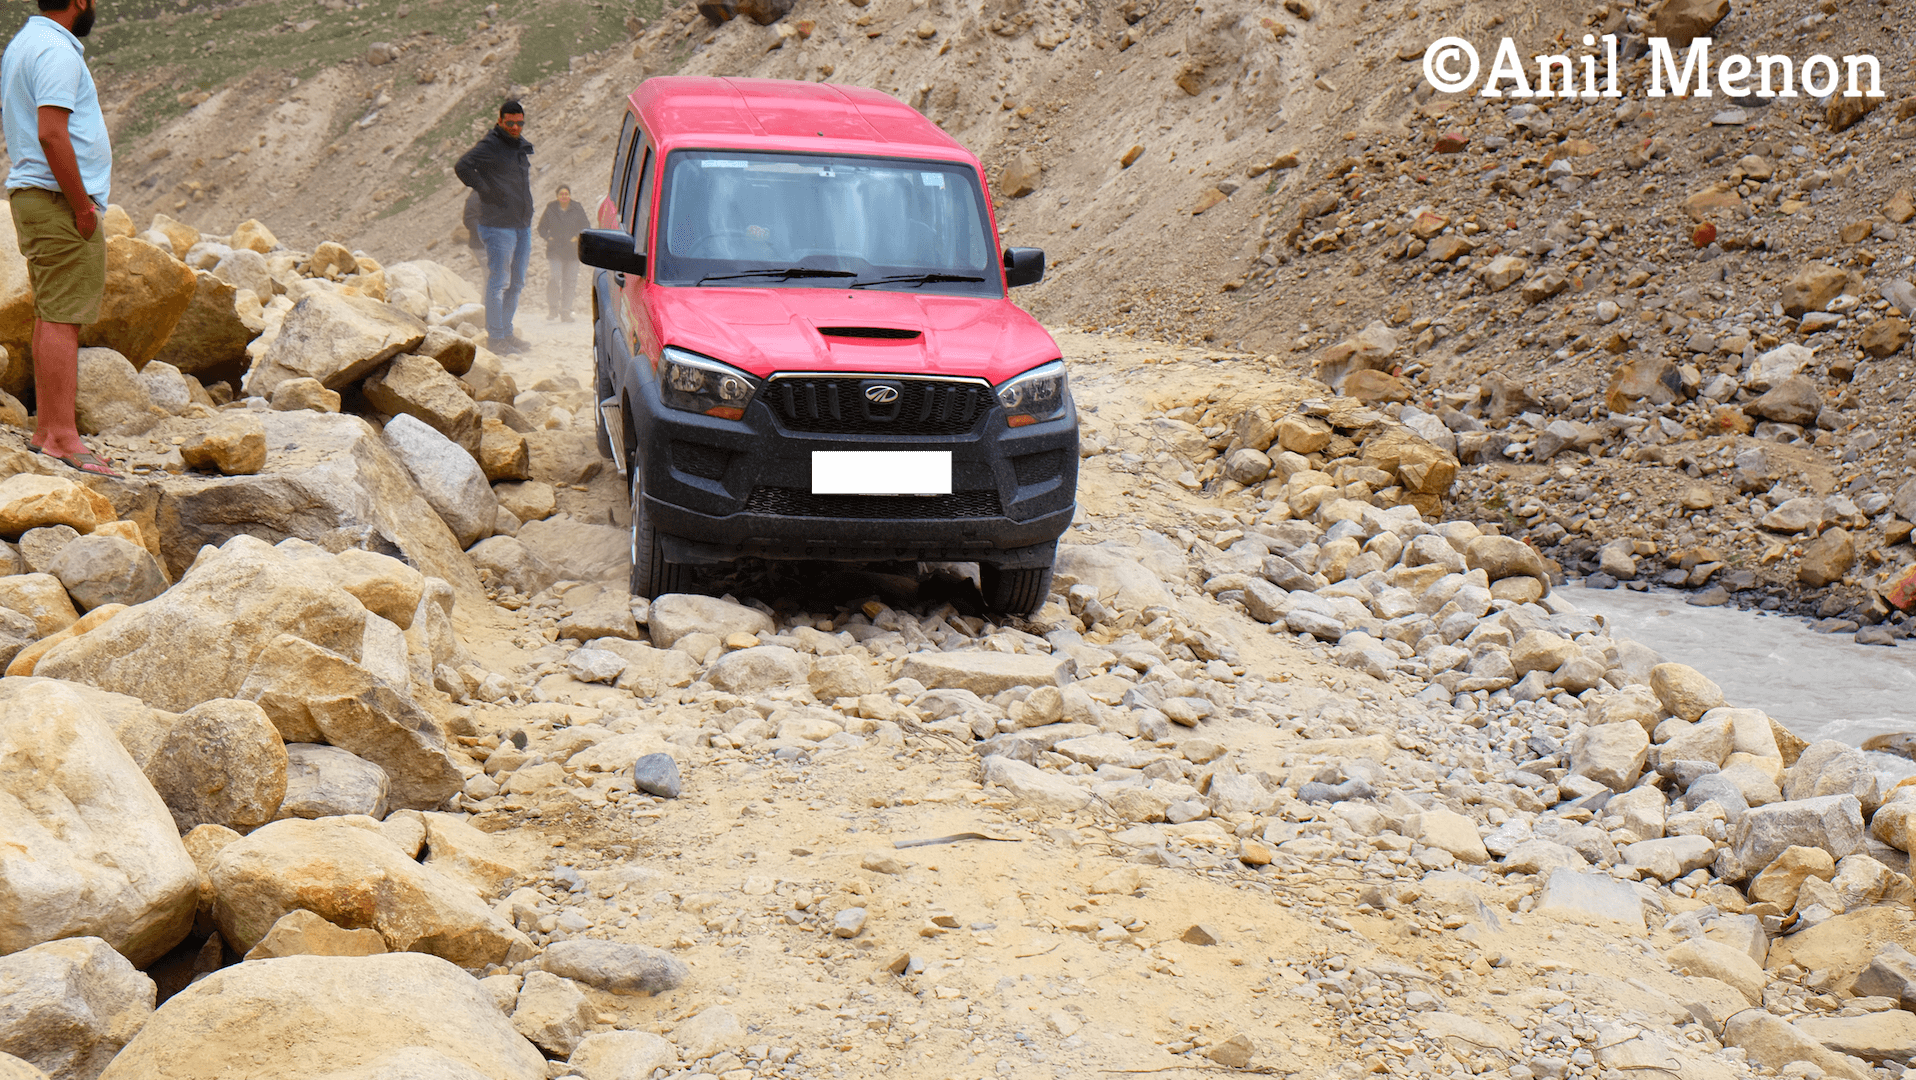 A car trying to navigate the treacherous mountainous gravel roads of the Himalayas with people looking on.